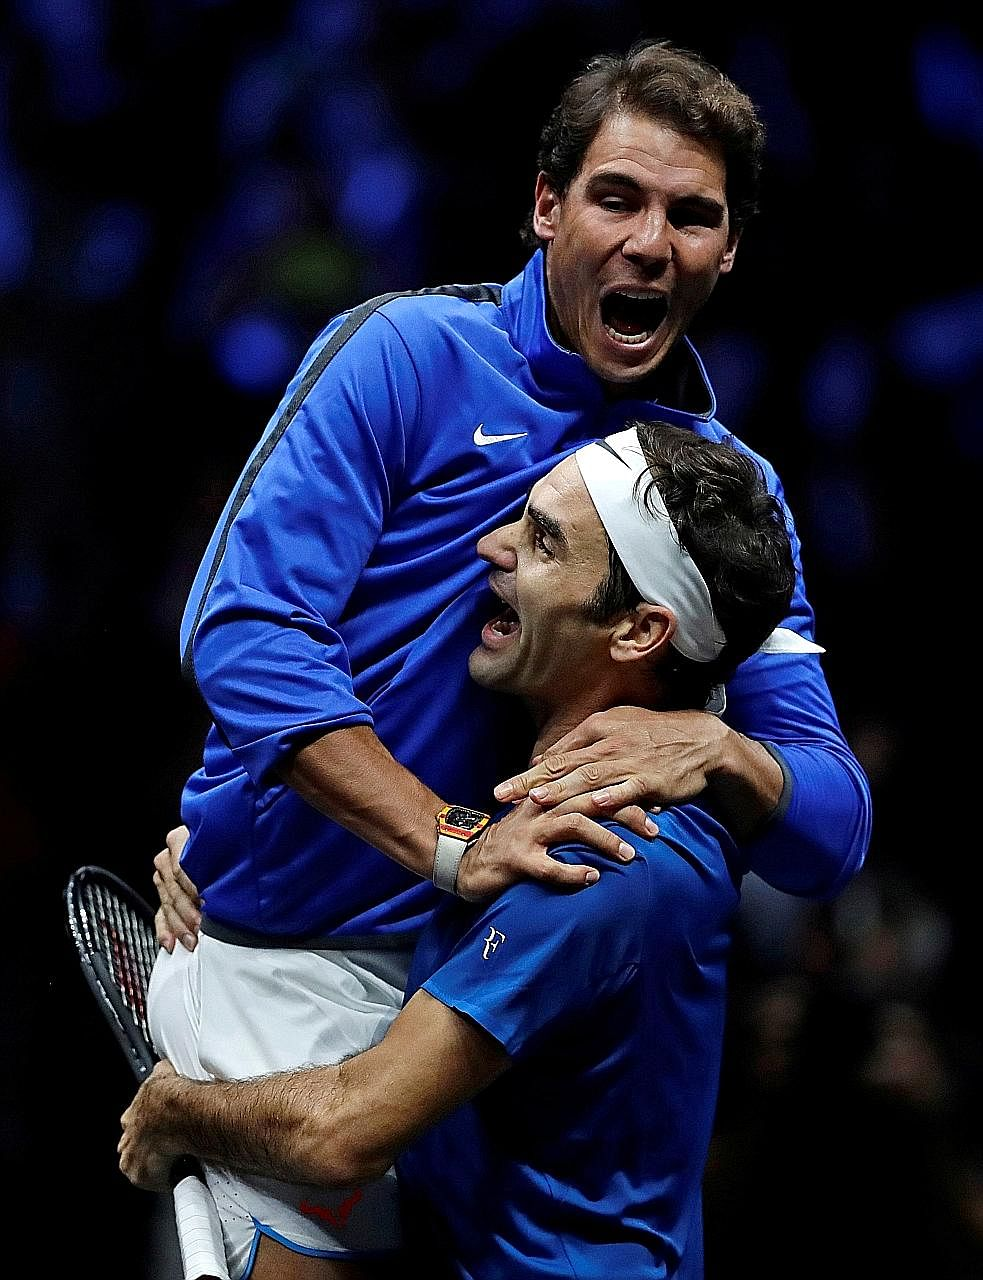 An overjoyed Rafael Nadal jumping into the arms of Roger Federer, as Team Europe celebrate their 15-9 victory over Team World after the Swiss legend beat Nick Kyrgios in the final match in Prague.